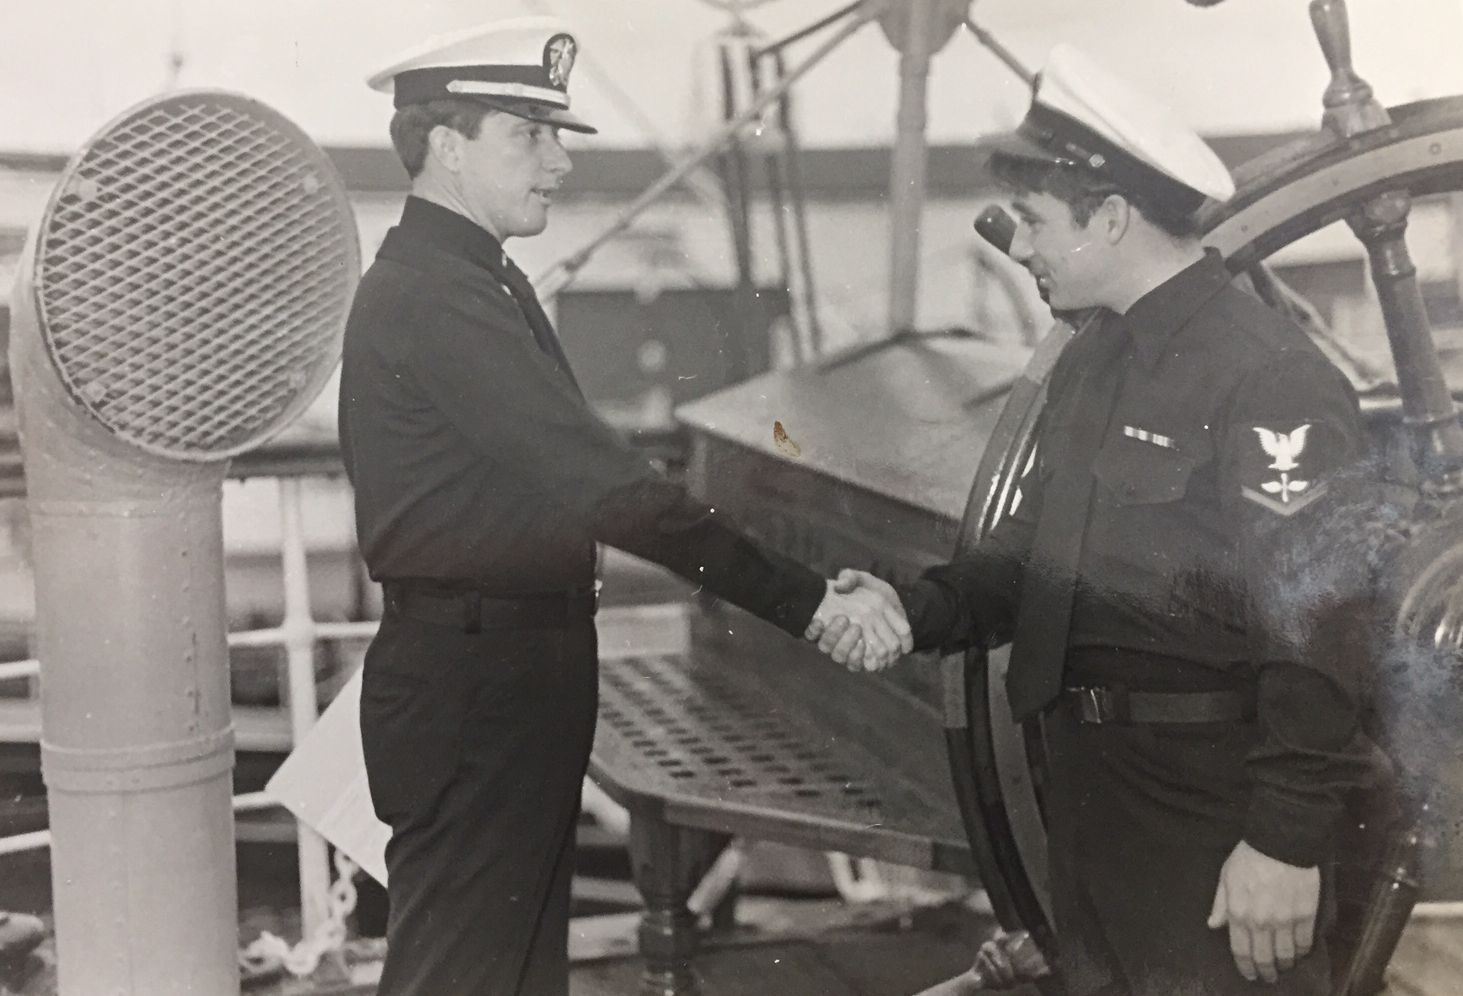 Getting another medal, I was on the deck of a tall sailing ship, three mast.